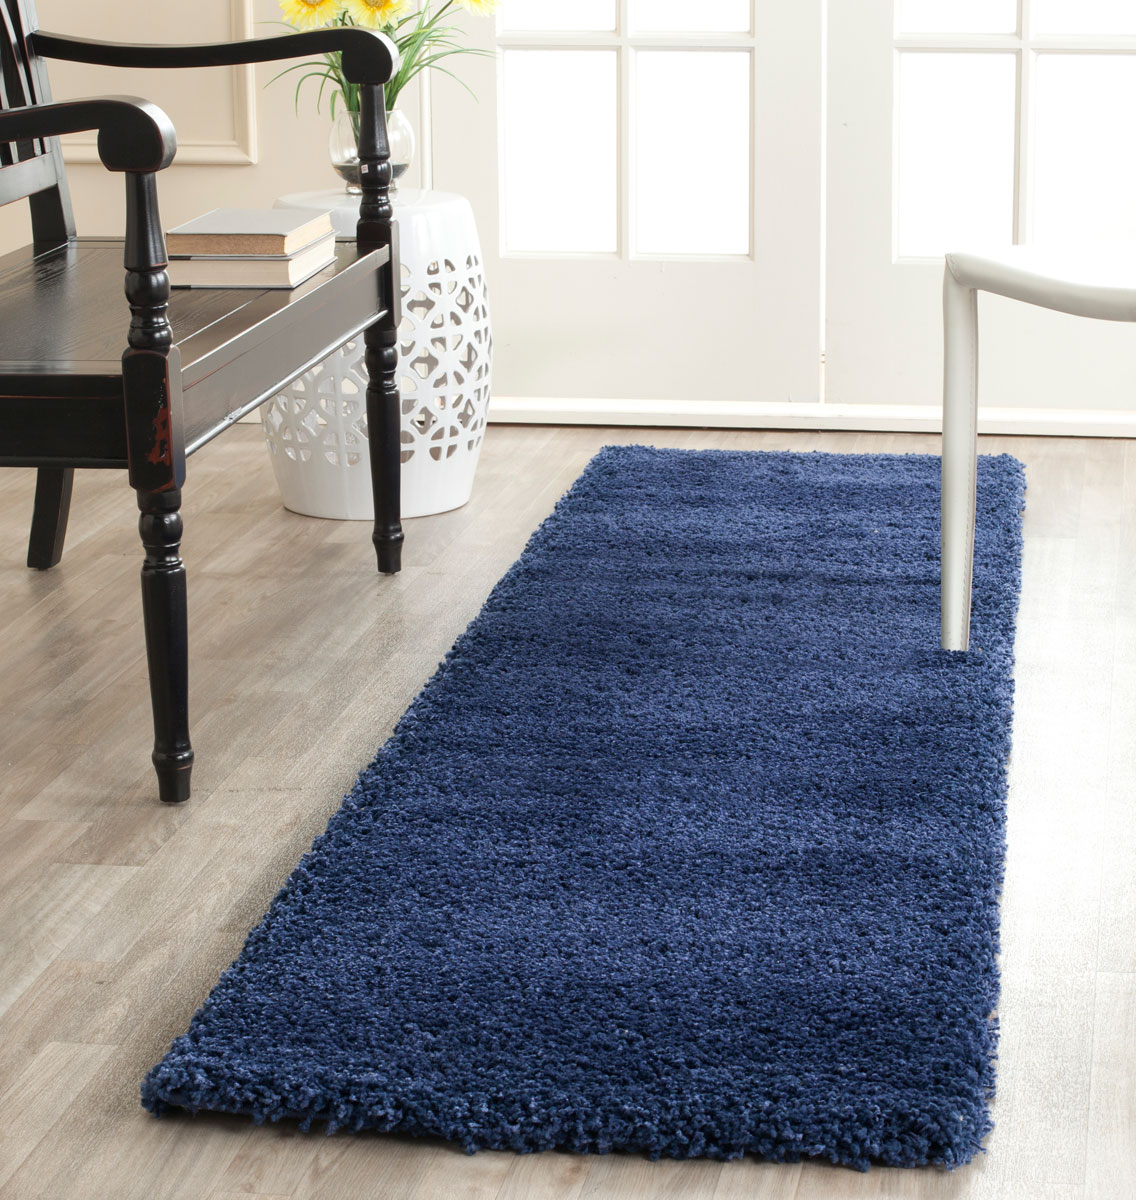 wool p mad rockett accessories and blue rug from navy st george house about rugs origins the